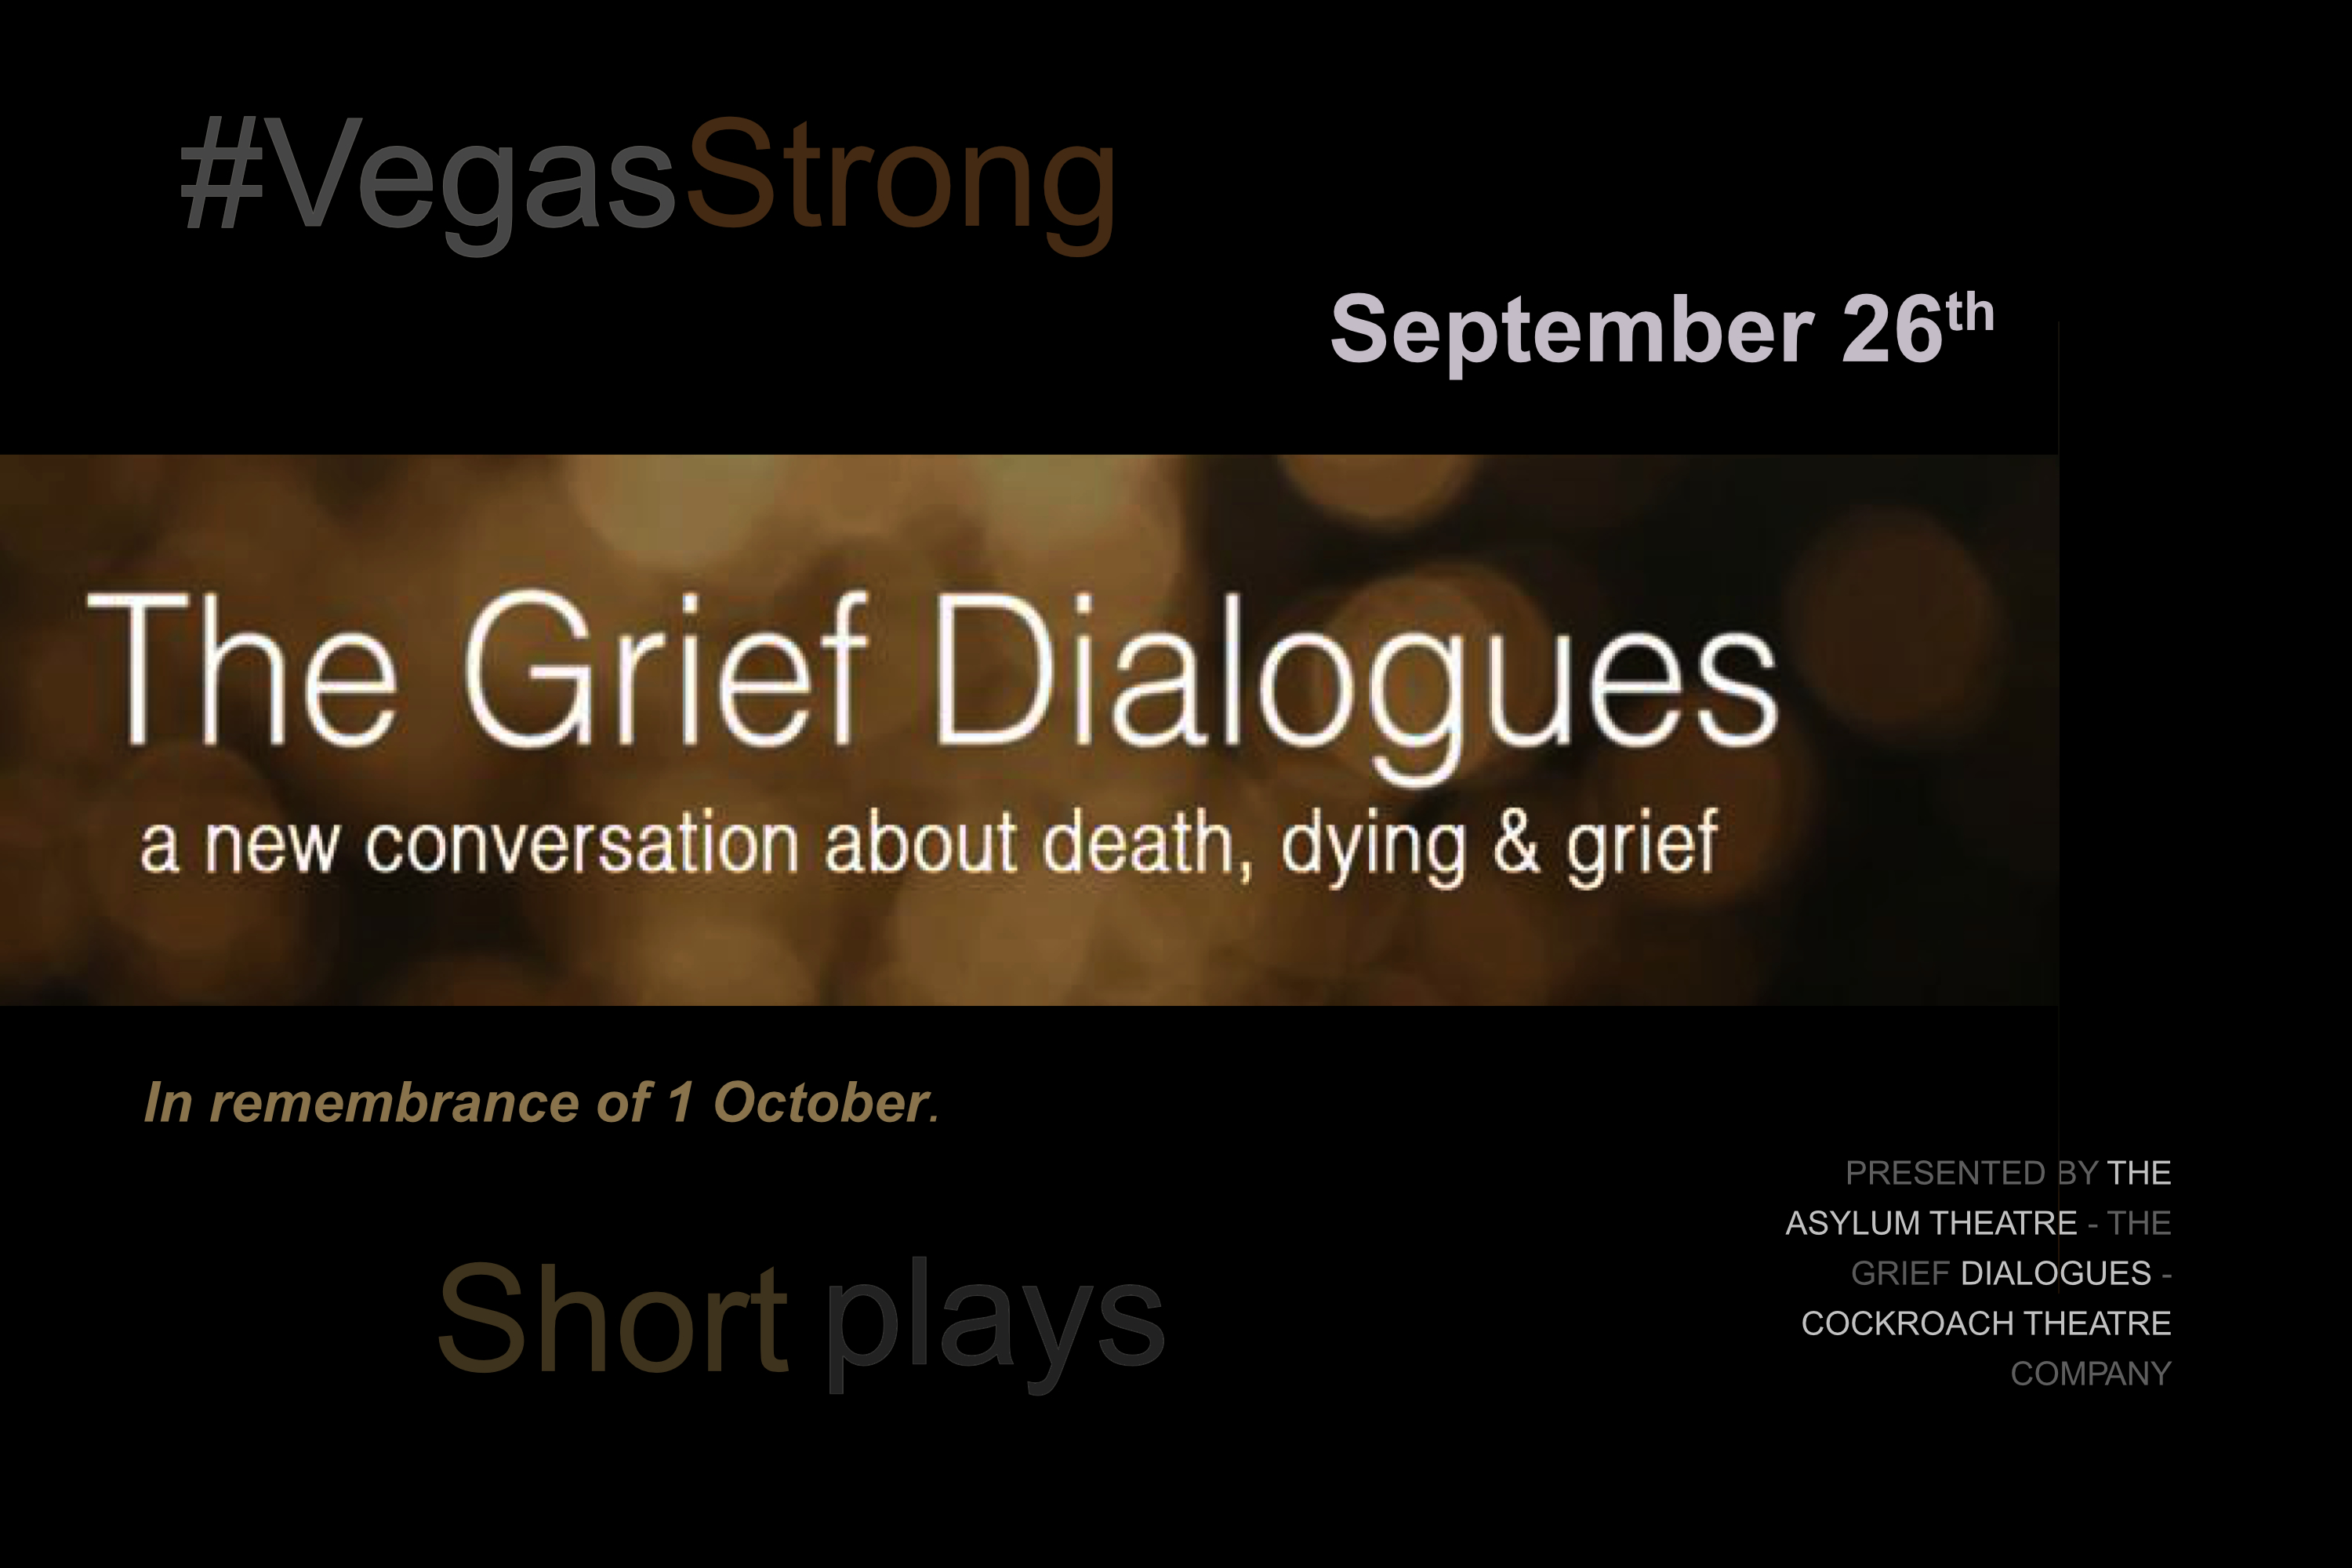 THE GRIEF DIALOGUES